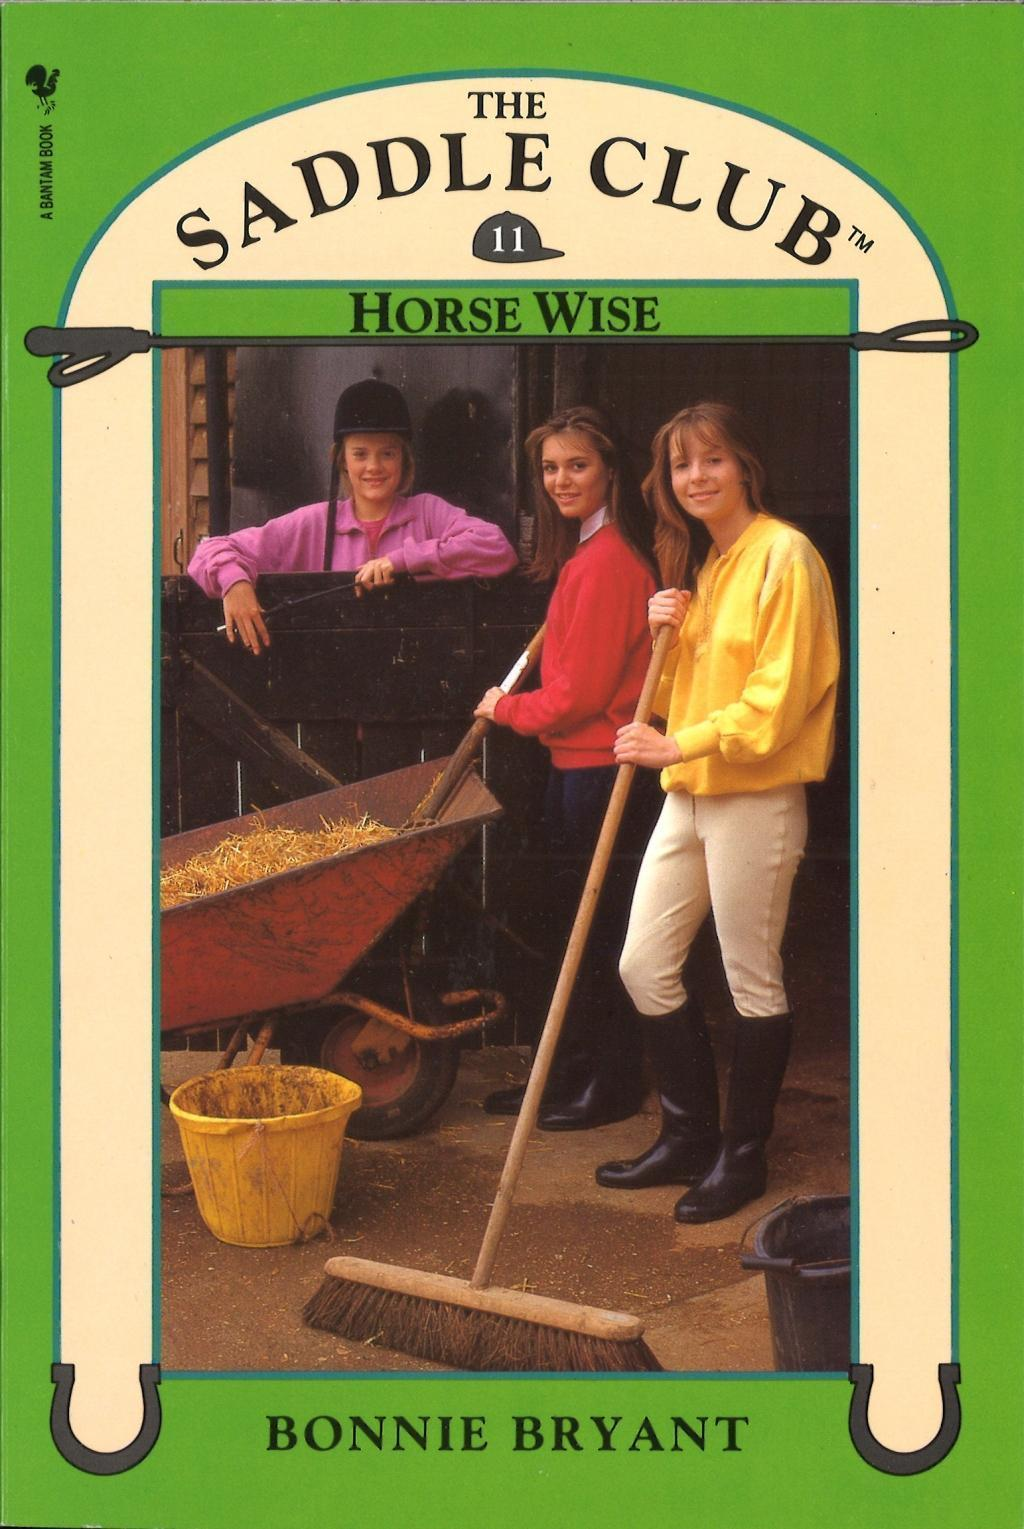 Saddle Club Book 11: Horse Wise